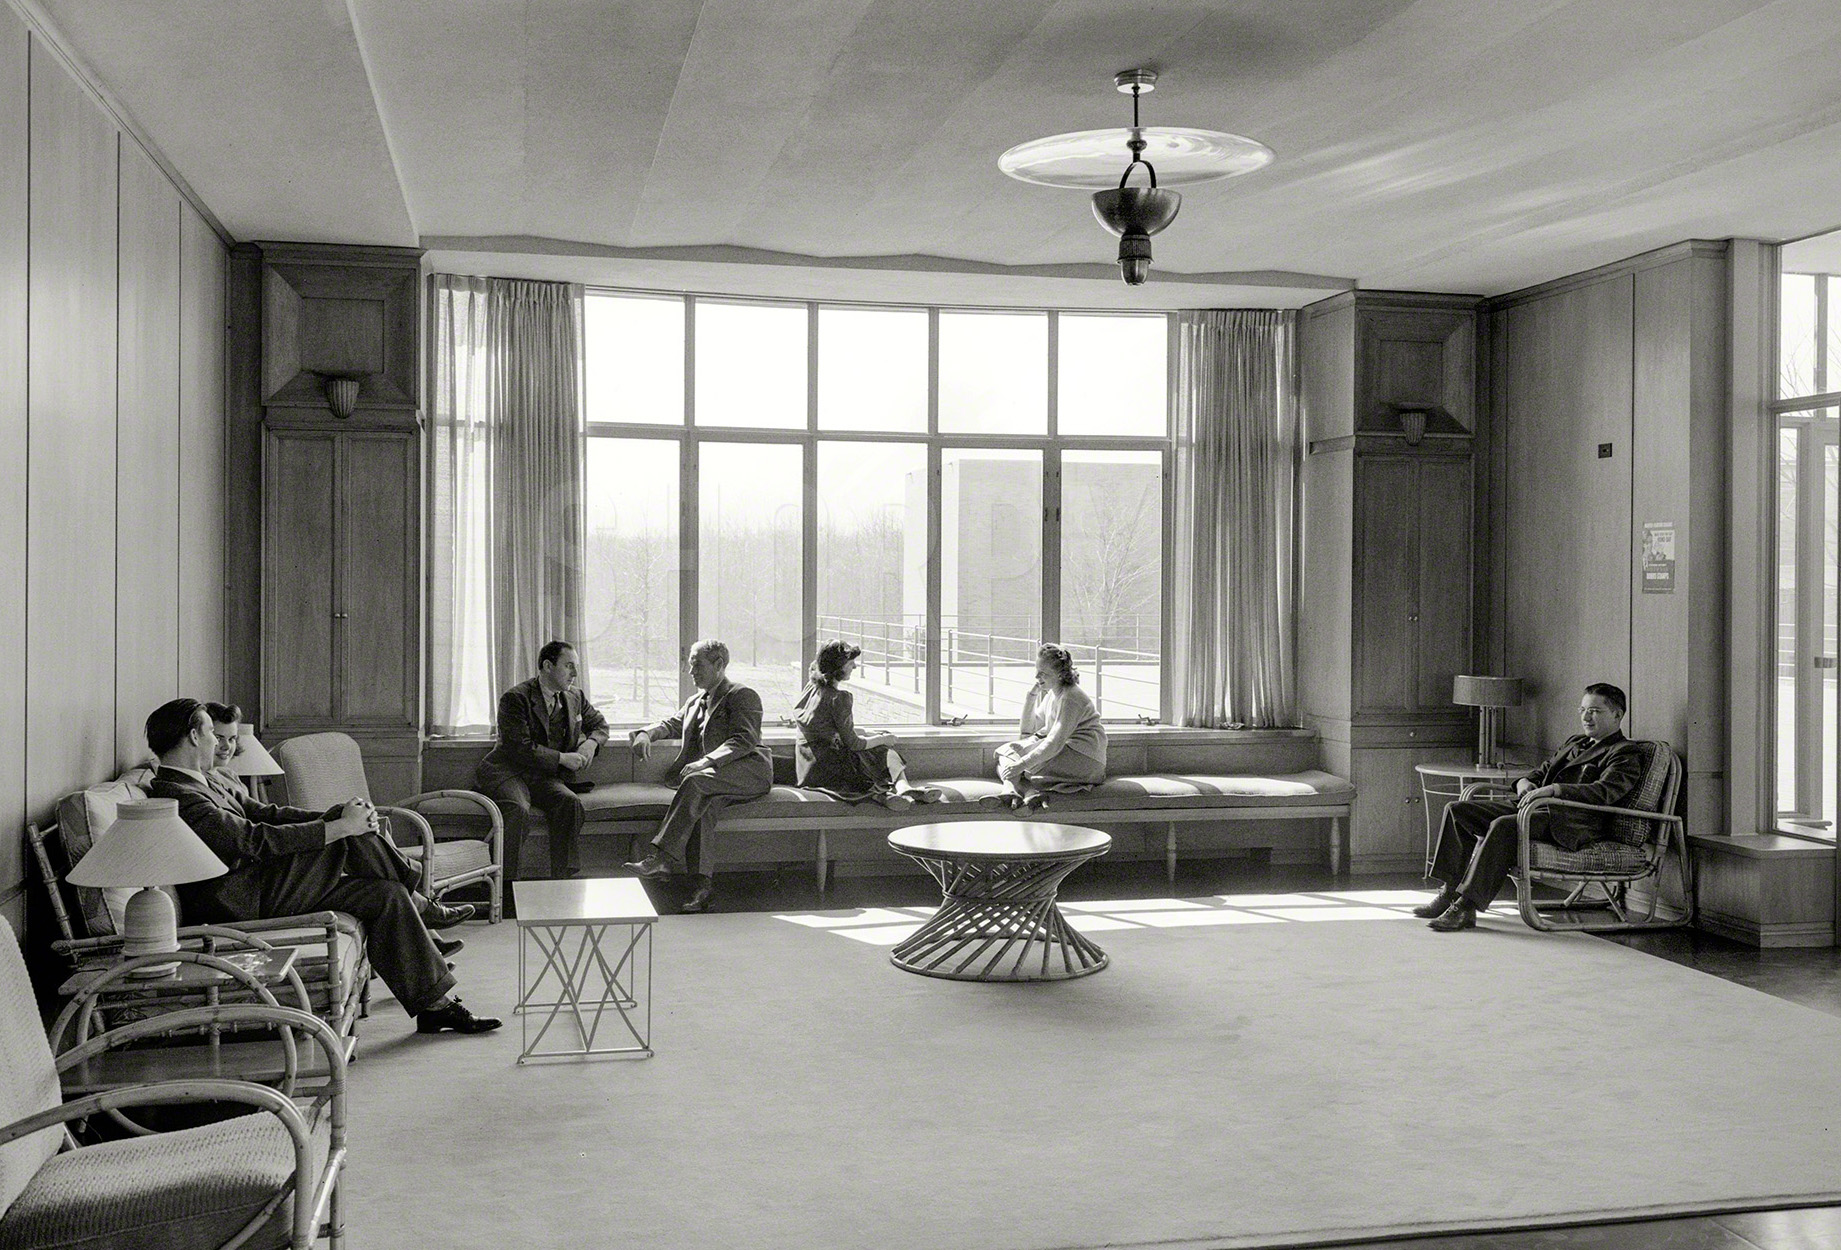 Exceptionnel A Stylish Employee Lounge At Bell Labs In New Jersey, 1942. Via Shorpy.